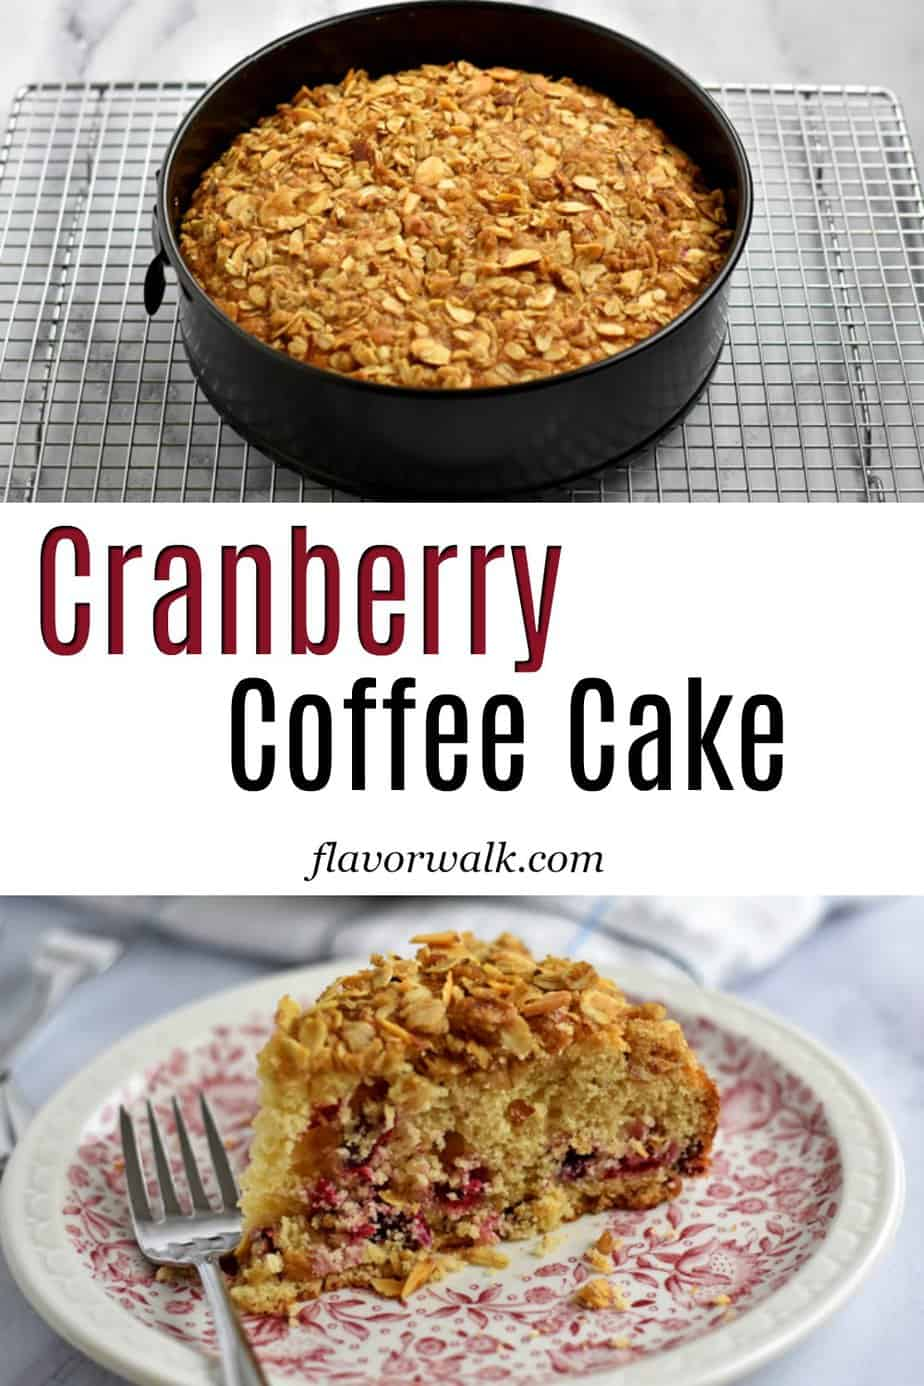 Top image is baked cranberry coffee cake, bottom image is a slice of cranberry coffee cake, and text overlay in the middle